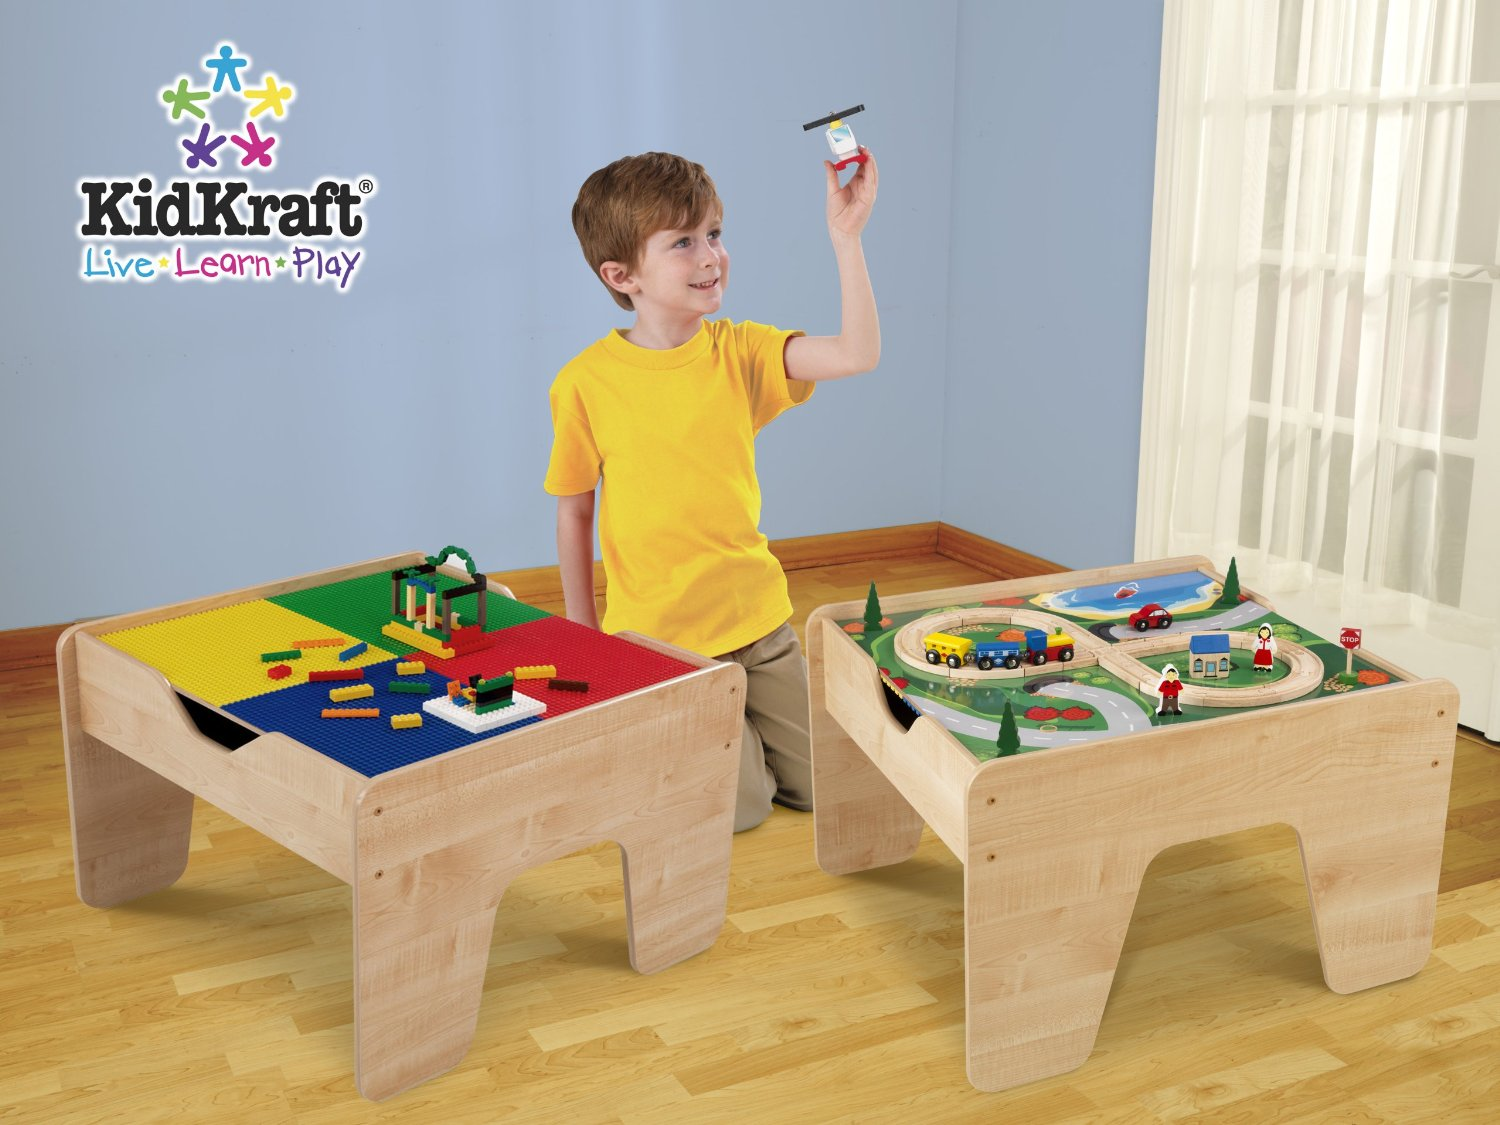 ... Lego Activity Table At Amazon. 81hNbZf0dDL._SL1500_